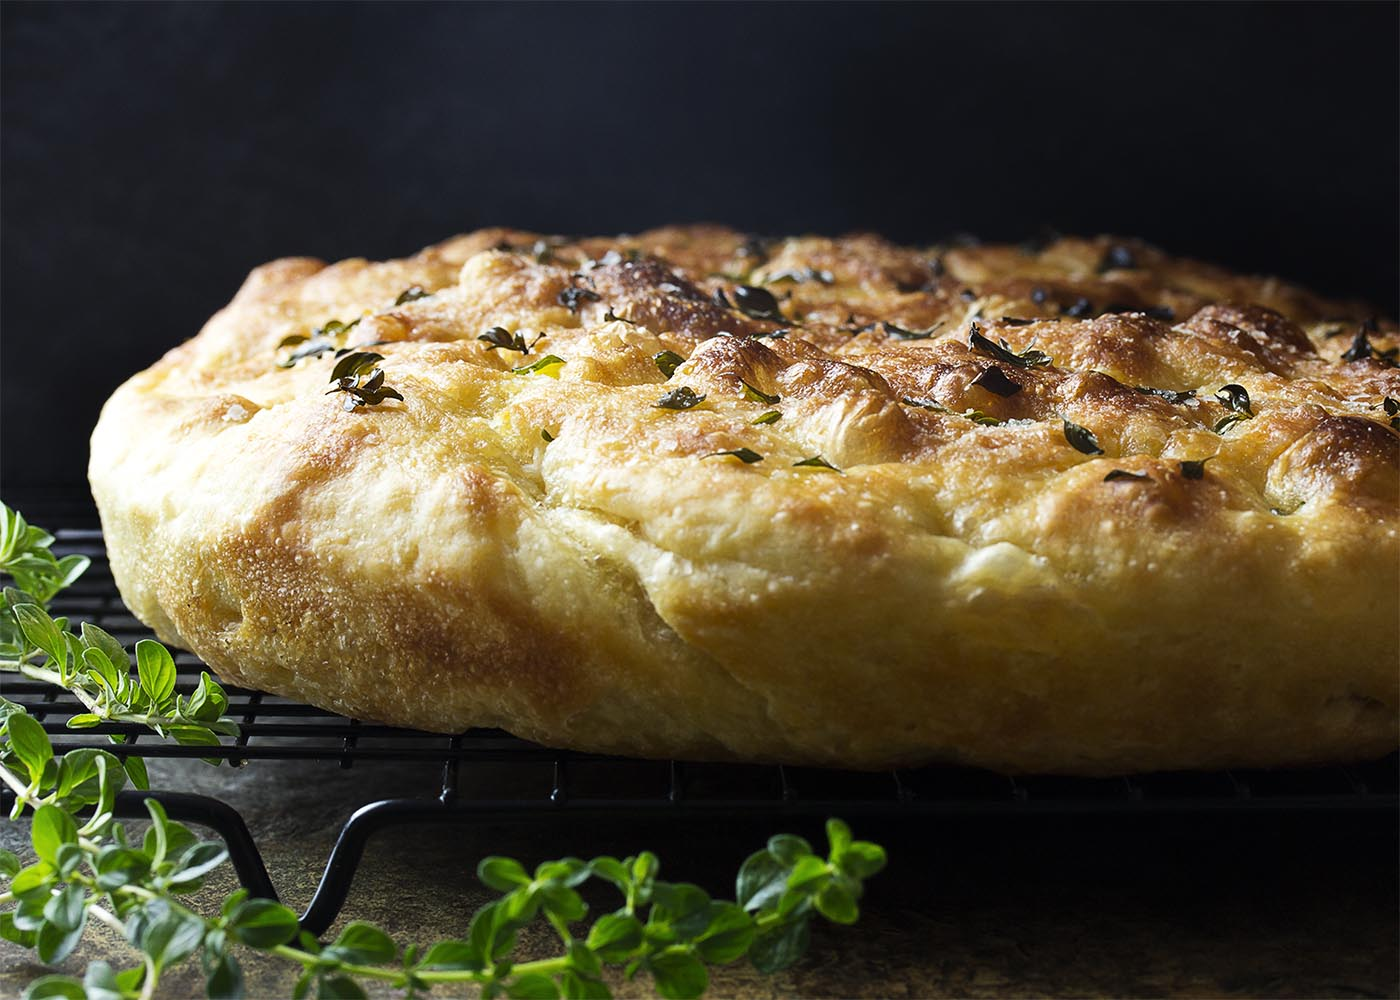 My no-knead focaccia bread with garlic and thyme is made right in a cast iron skillet, giving it a soft and chewy interior and crispy edges. Easy! Great for dinner or for paninis! | justalittlebitofbacon.com